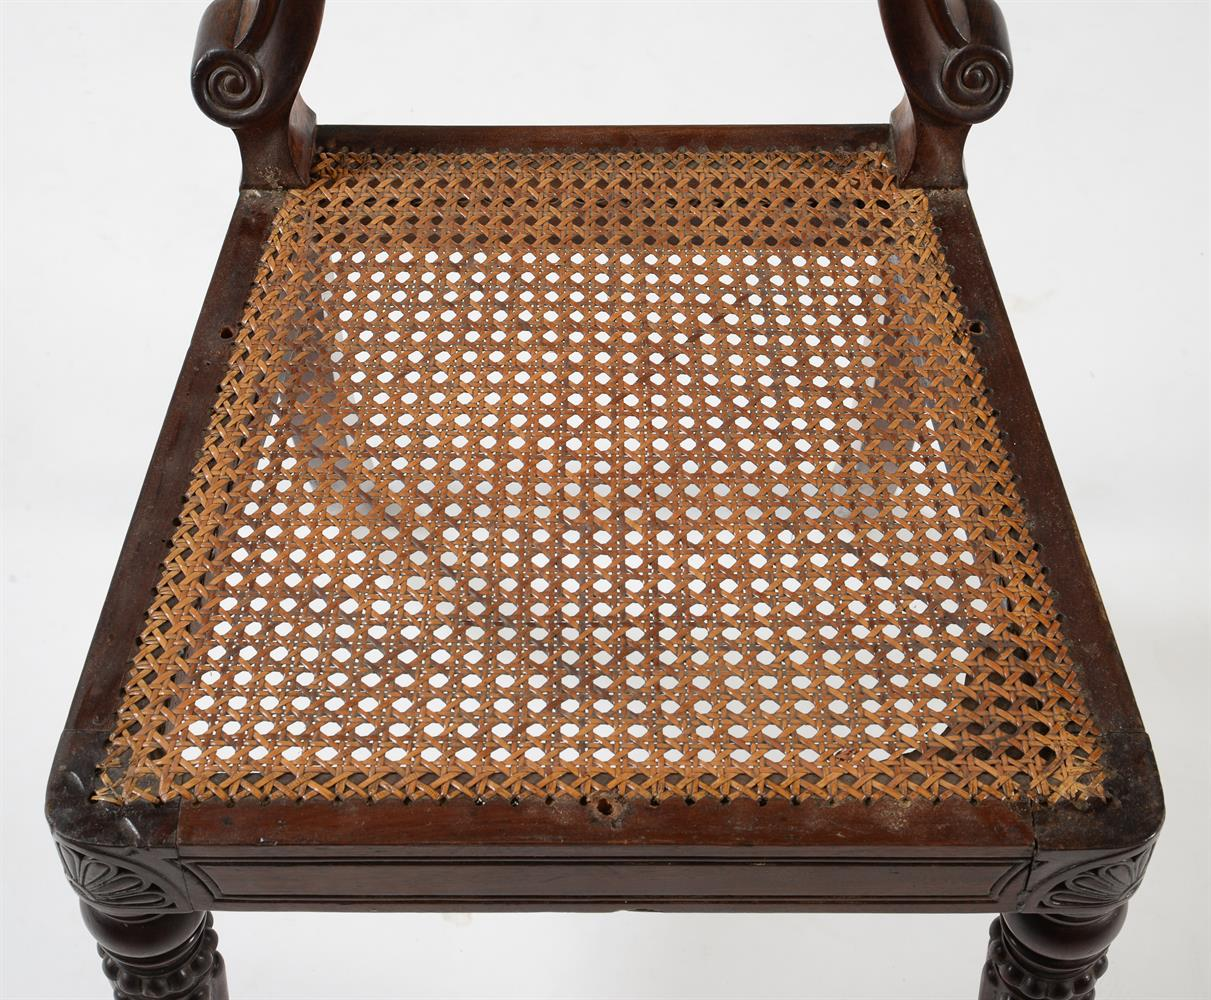 A SET OF EIGHT WILLIAM IV MAHOGANY DINING CHAIRS, CIRCA 1835, ATTRIBUTED TO GILLOWS - Image 8 of 9